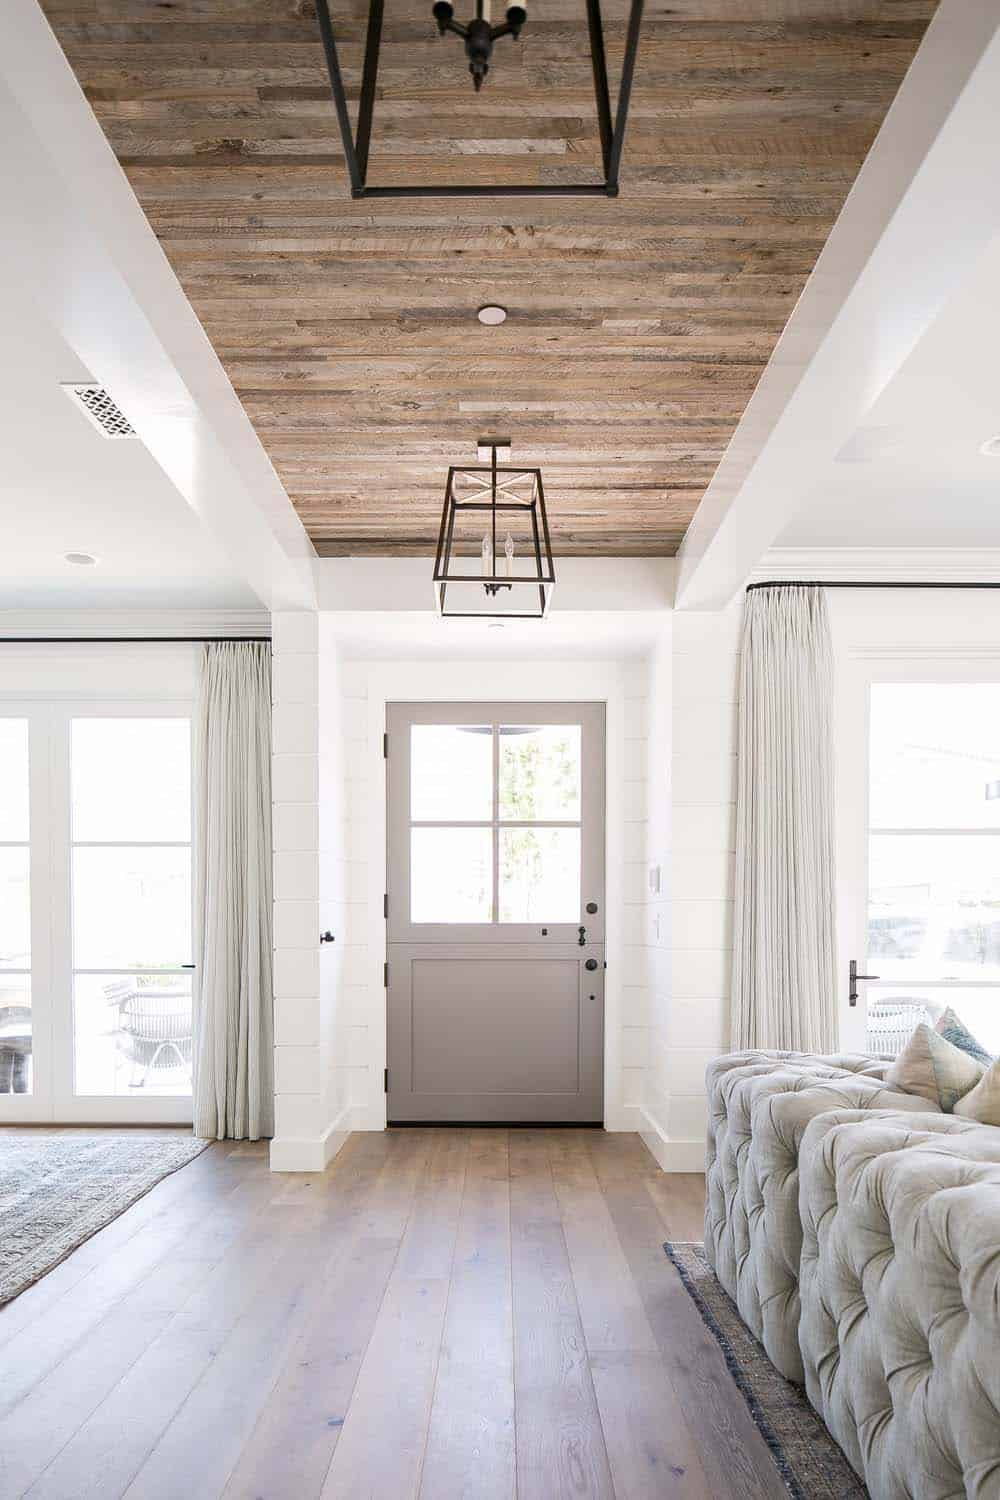 I love these farmhouse doors that can be opened on the top to let a breeze through the house on a nice day.